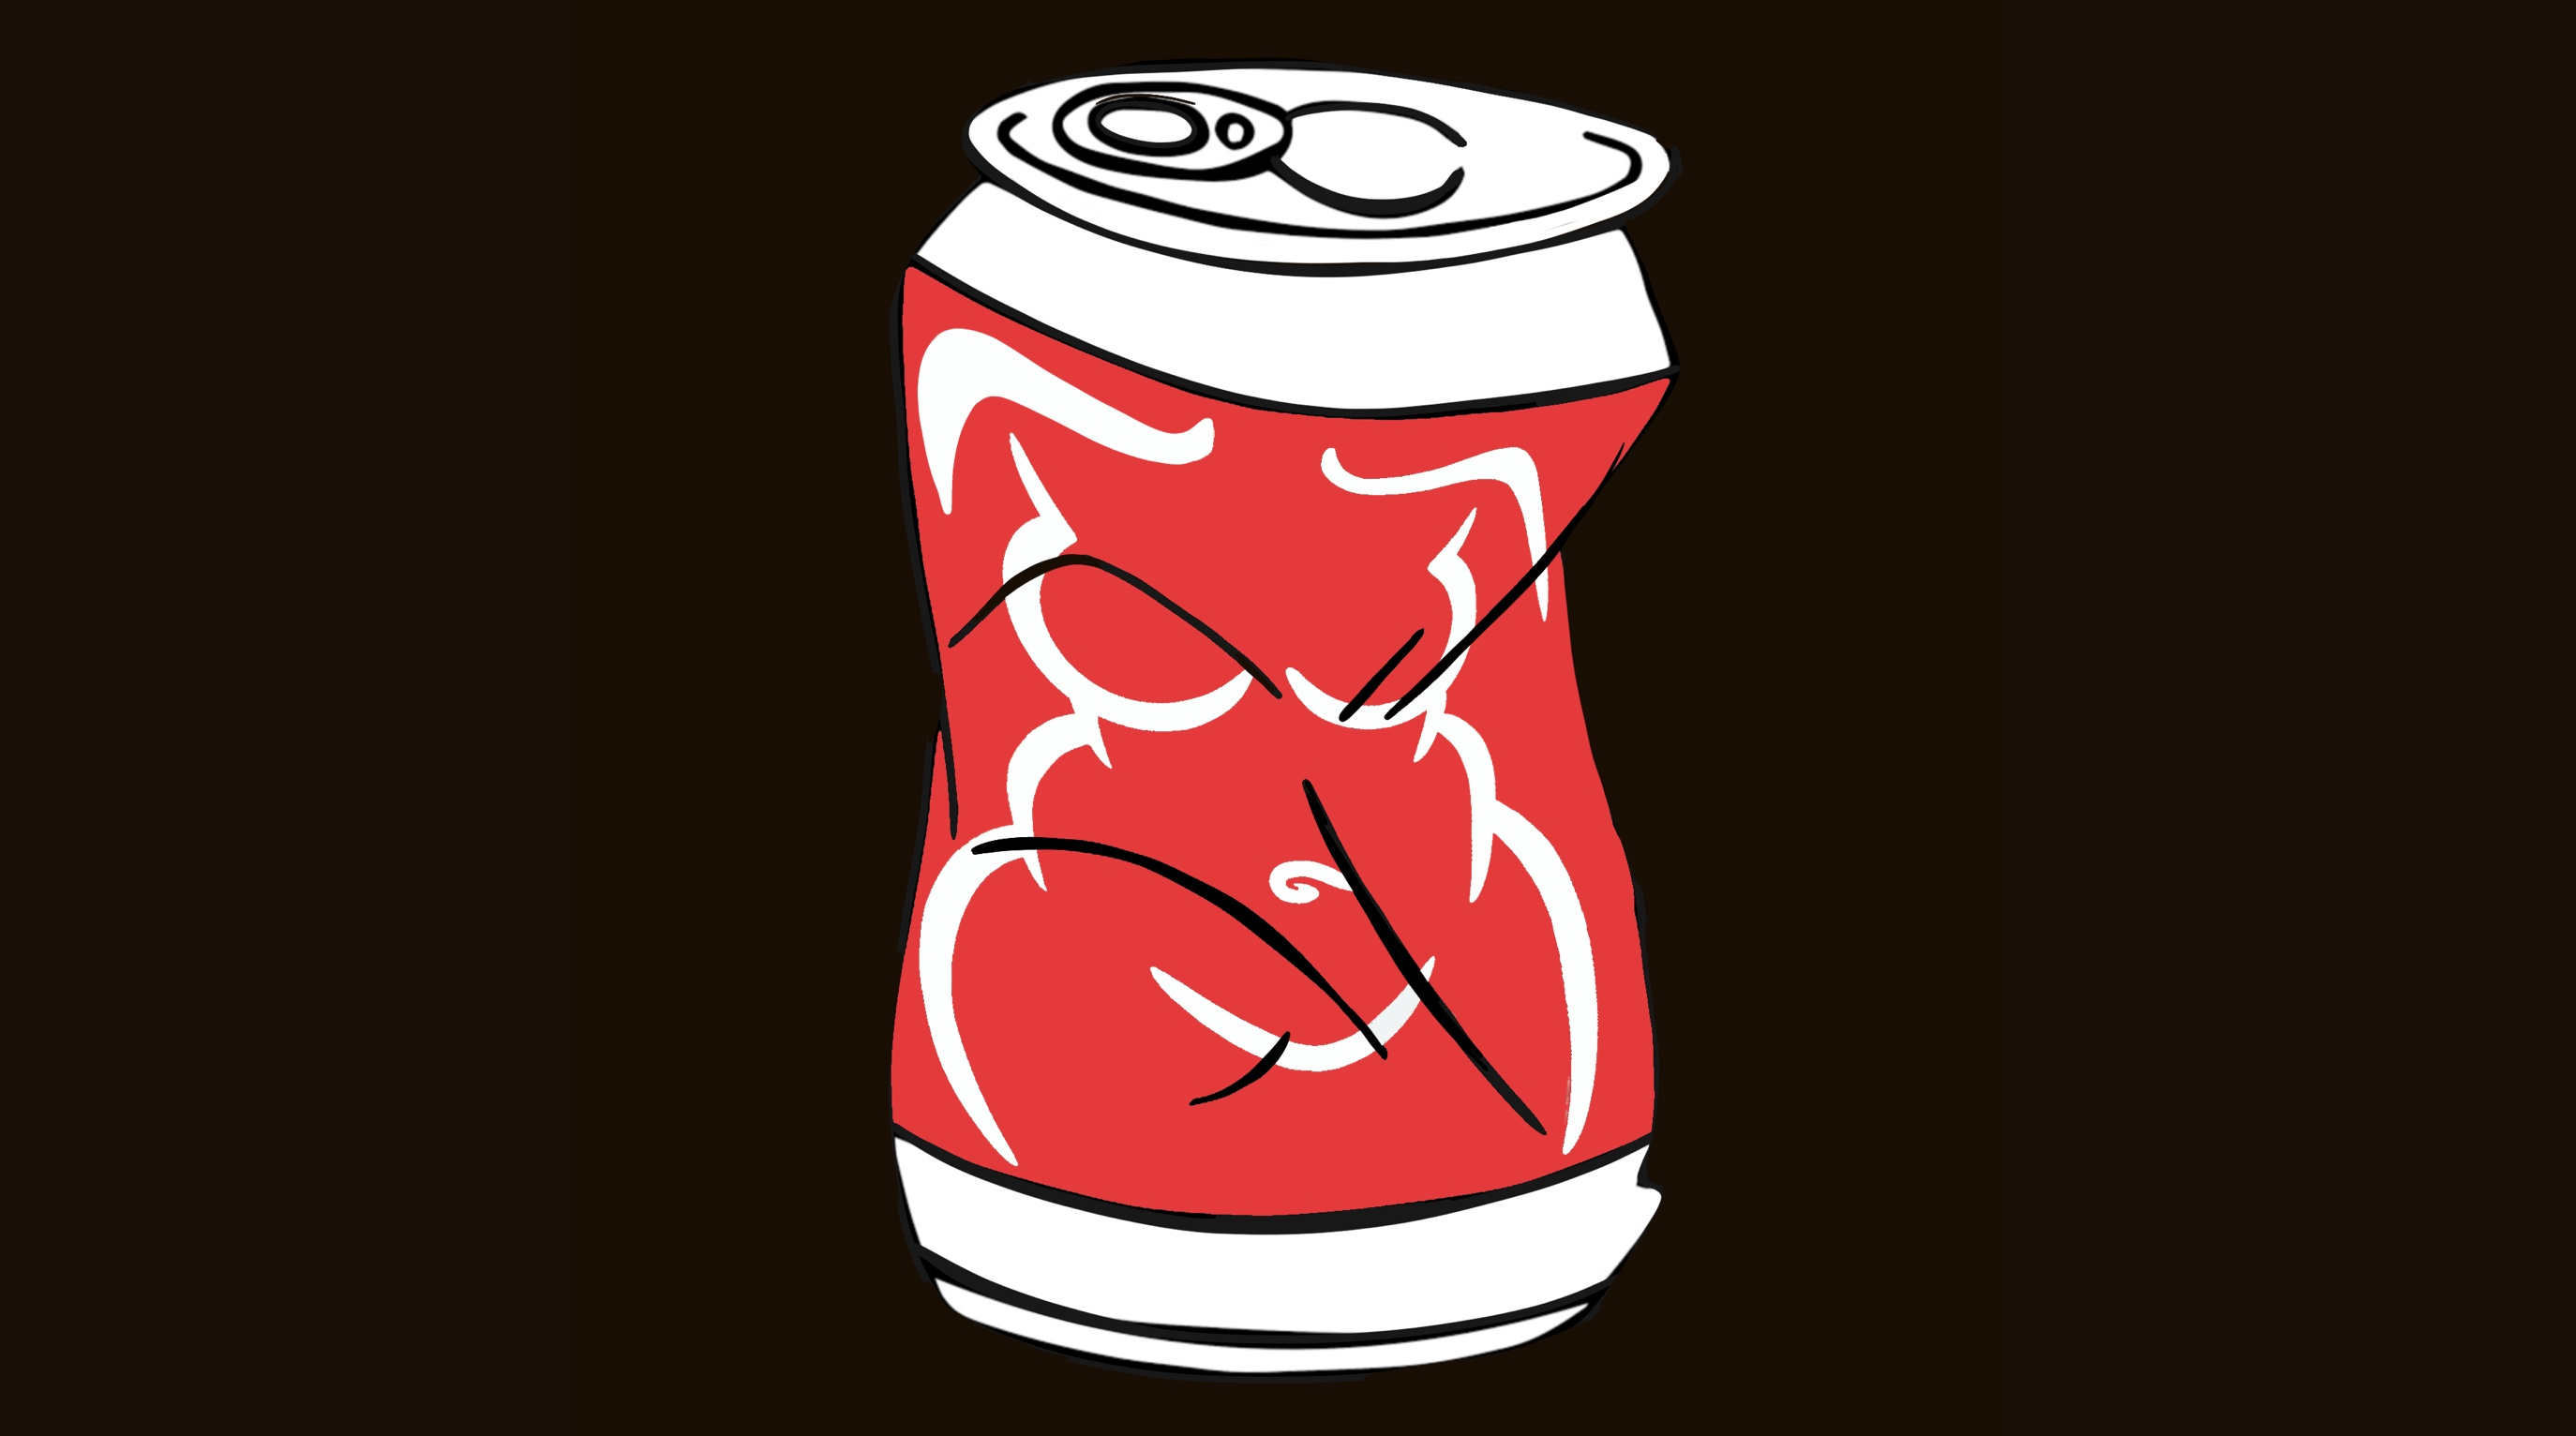 A crumpled soda can with the outline of a woman's body as the logo